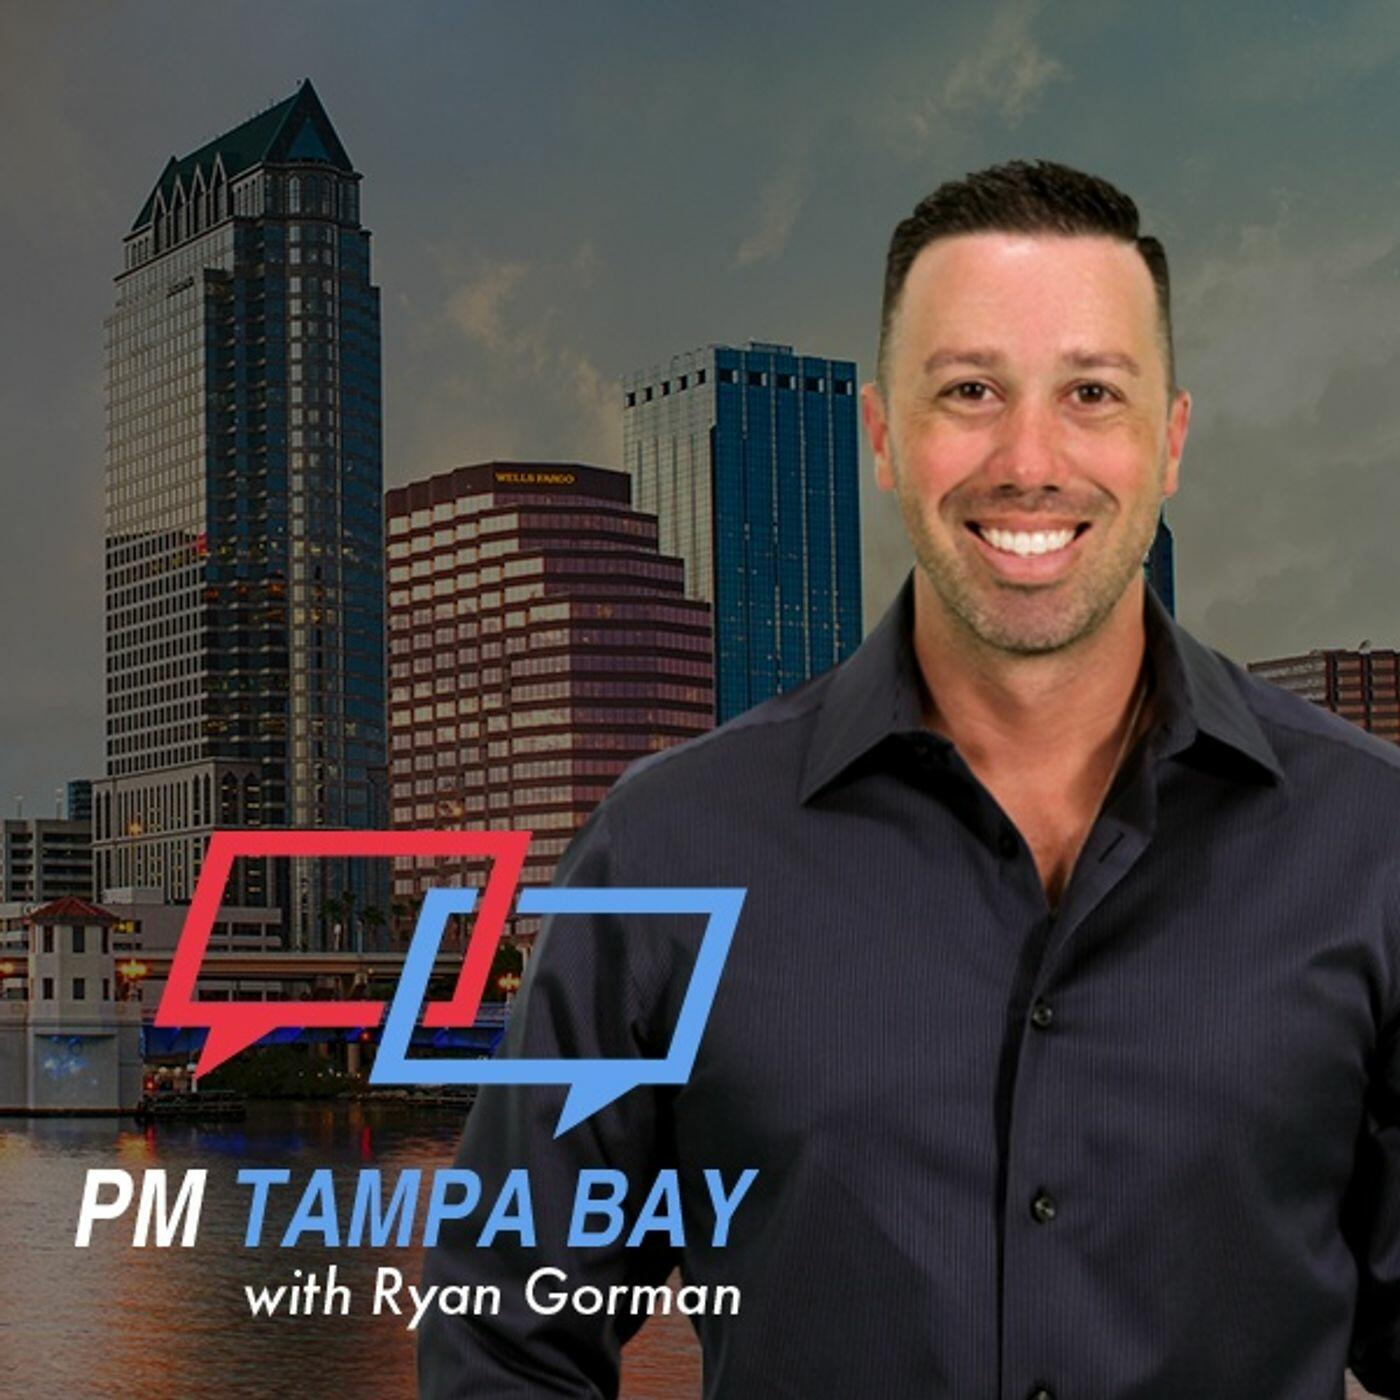 Listen to the PM Tampa Bay Episode - Confusion Over Expiration Labels Leads to $160 Billion in Food Waste on iHeartRadio | iHeartRadio